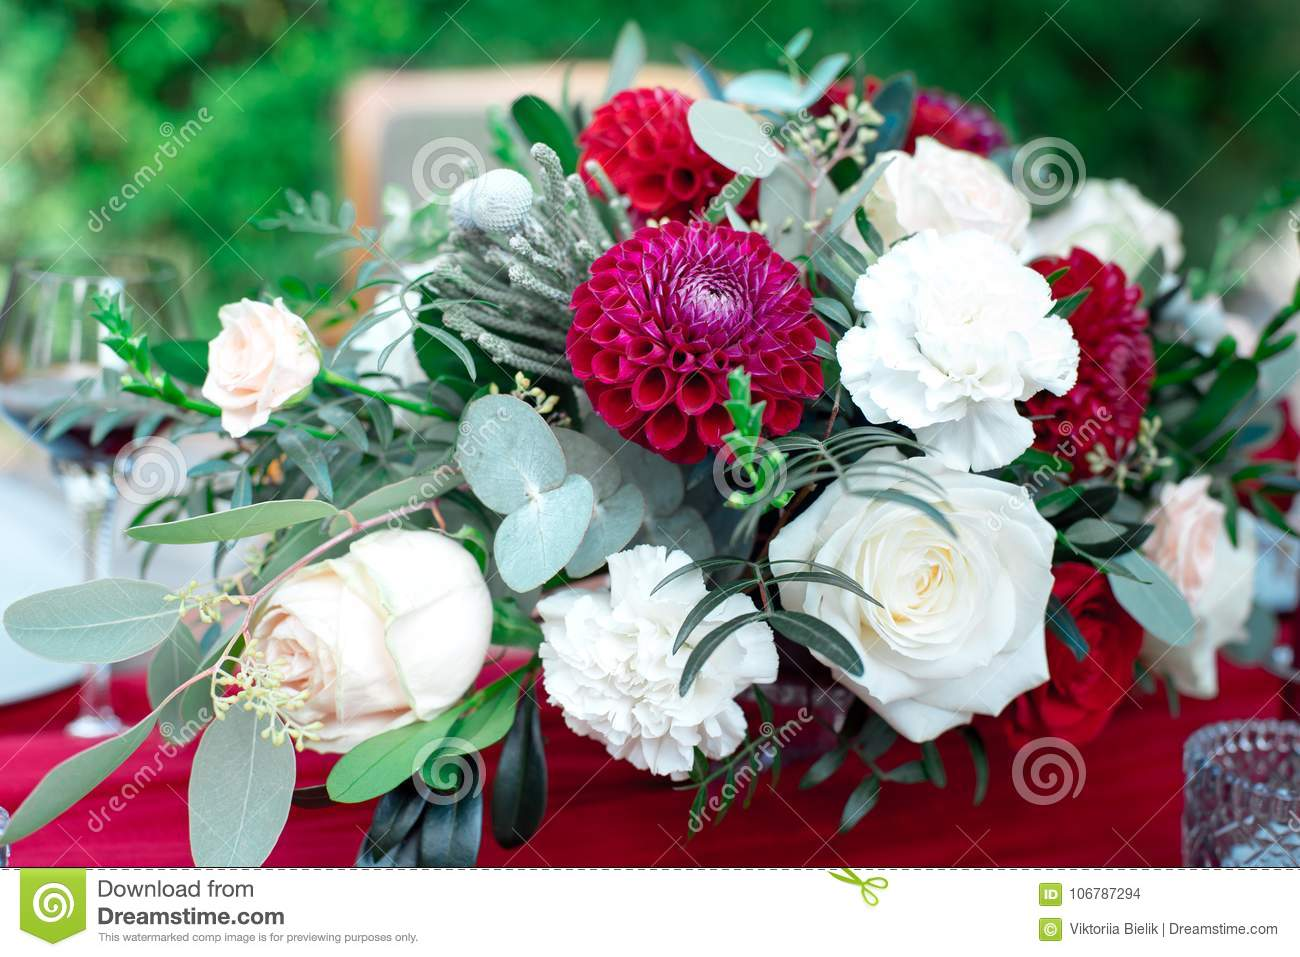 Romantic arrangement of red and white flowers stock photo image of download romantic arrangement of red and white flowers stock photo image of celebration decoration mightylinksfo